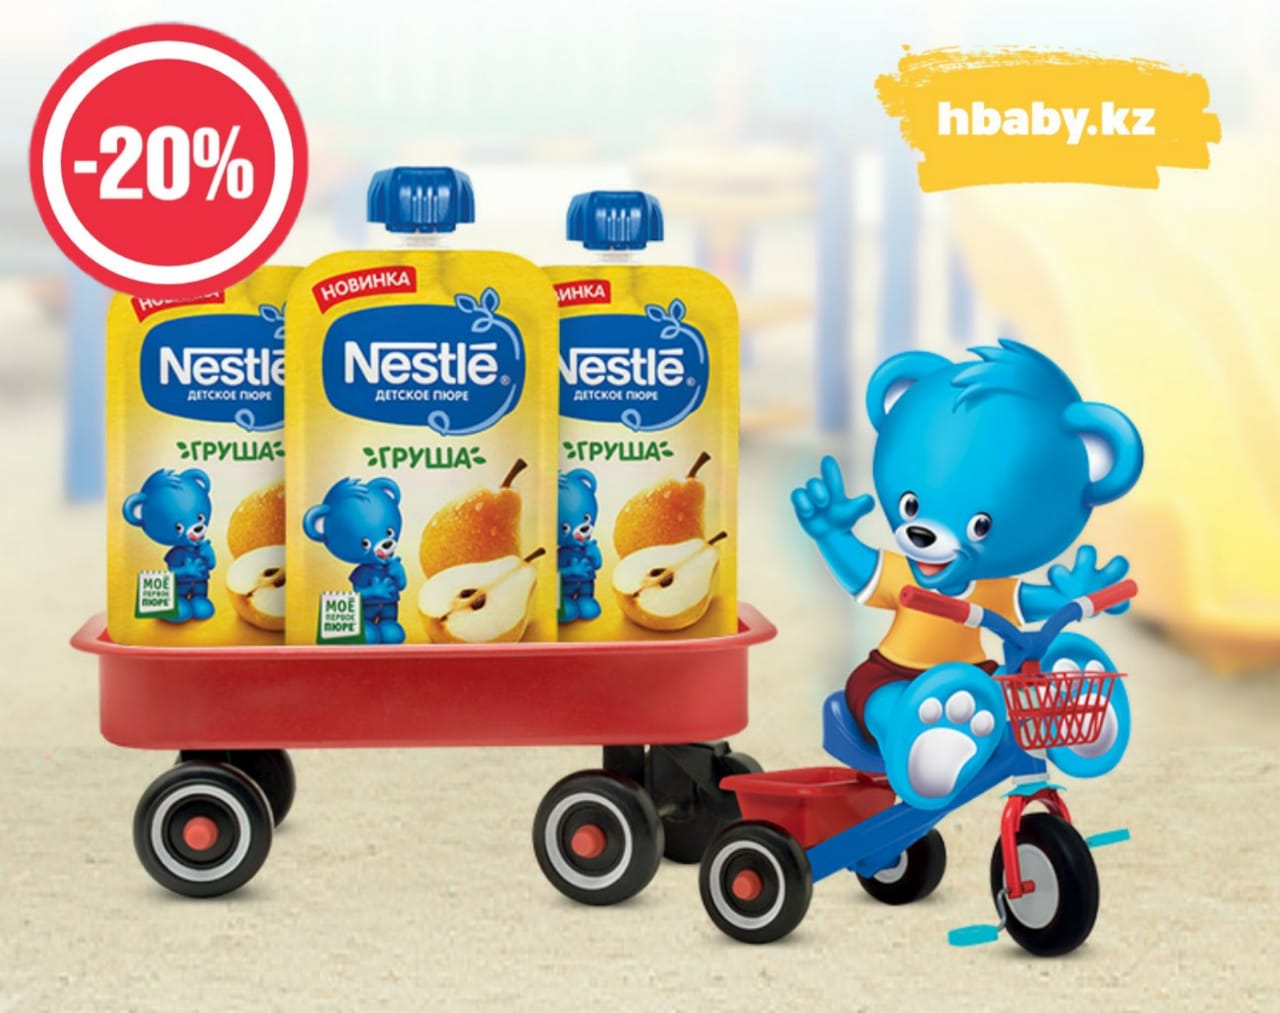 http://hbaby.kz/index.php?route=product/category&path=69_70#/nestle-m68/sort=p.sort_order/order=ASC/limit=15